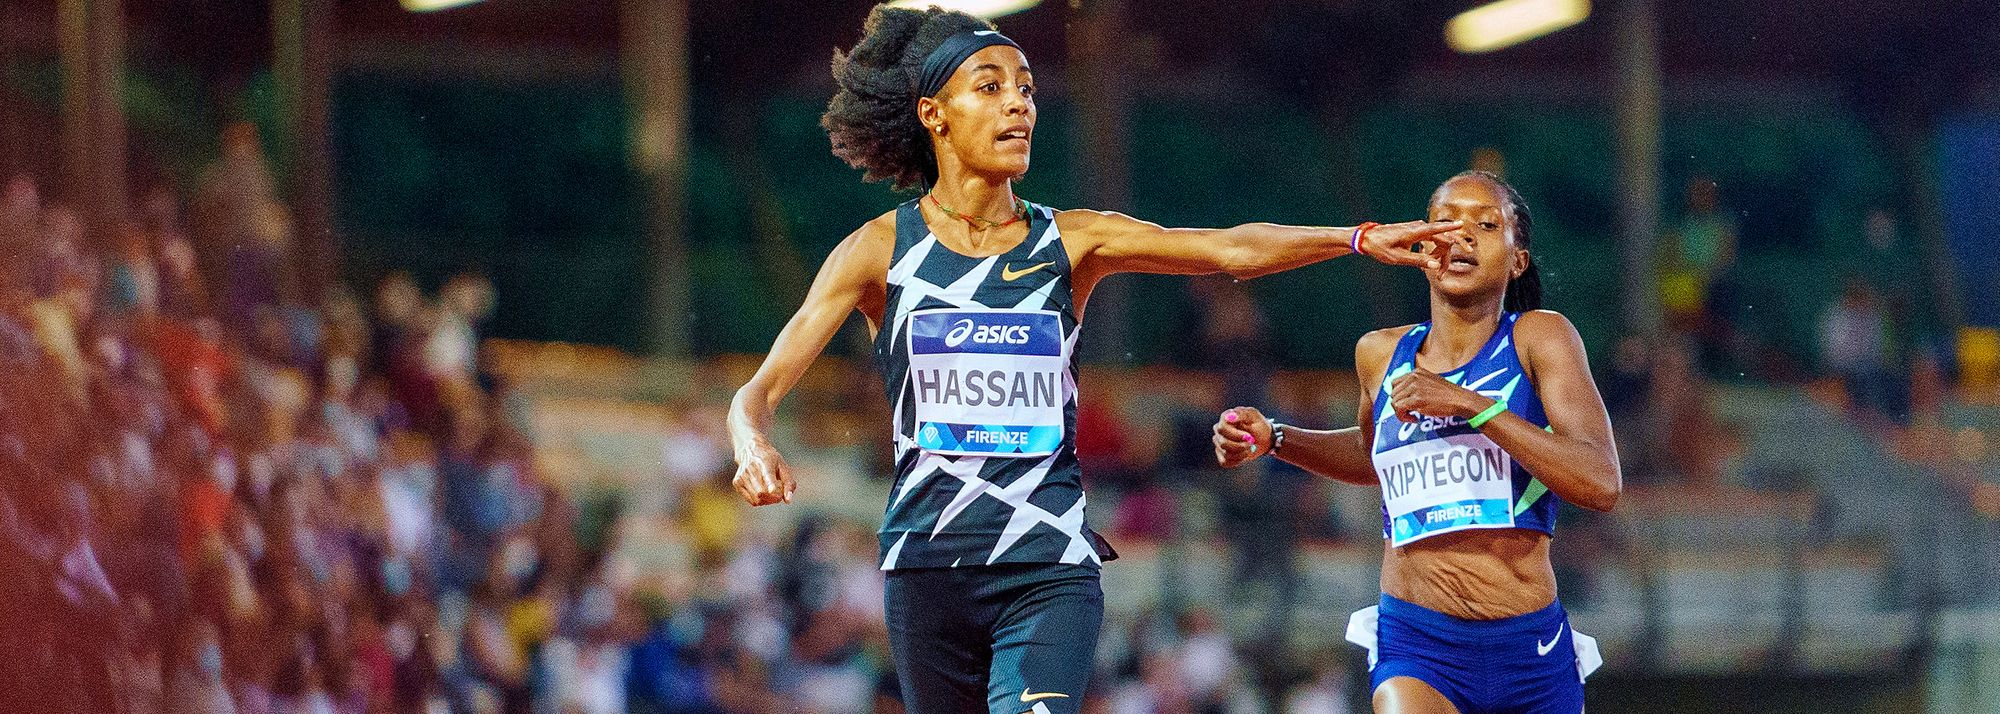 Four more world champions have been added to the fields for Meeting Herculis EBS as the middle-distance events once again look set to provide the highlights at the Wanda Diamond League meeting in Monaco on 9 July.